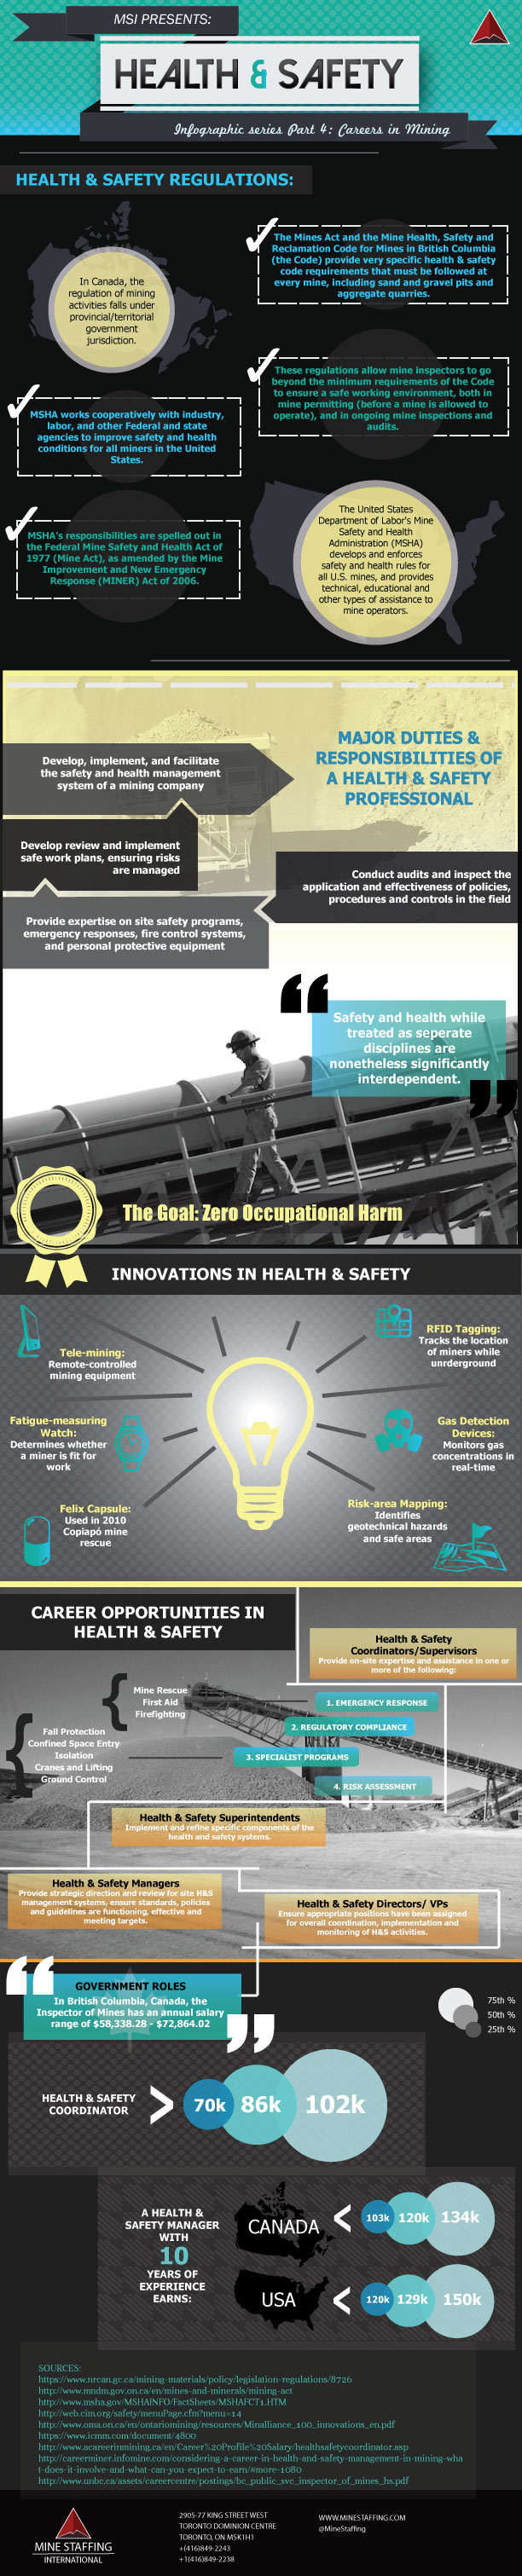 Careers In Health And Safety Infographic